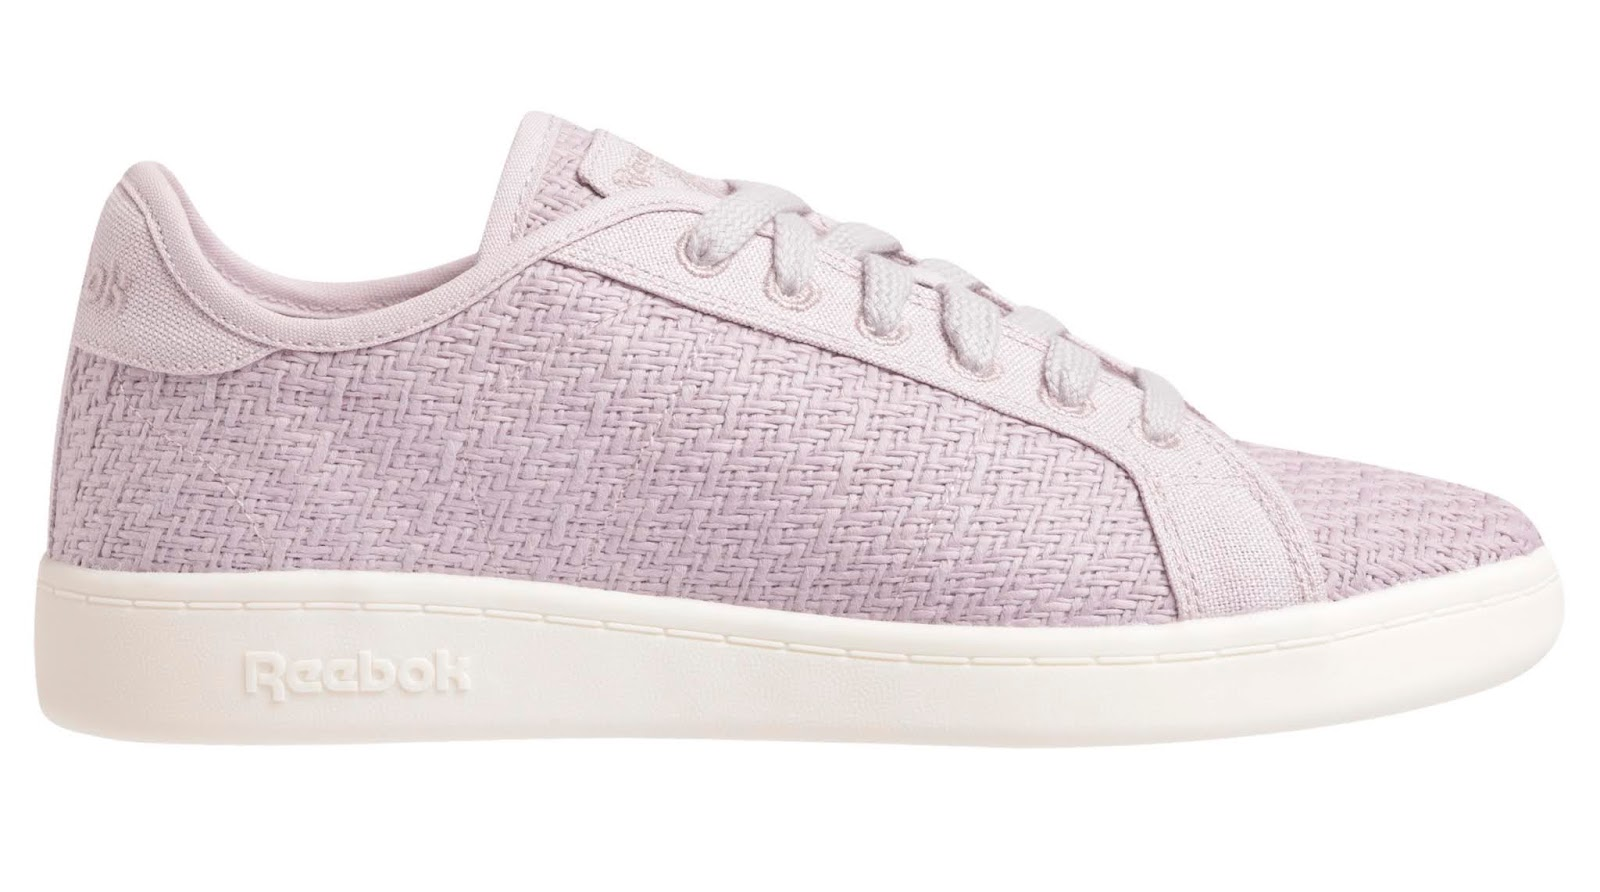 Modelo morado de zapatillas Reebok Cotton Corn